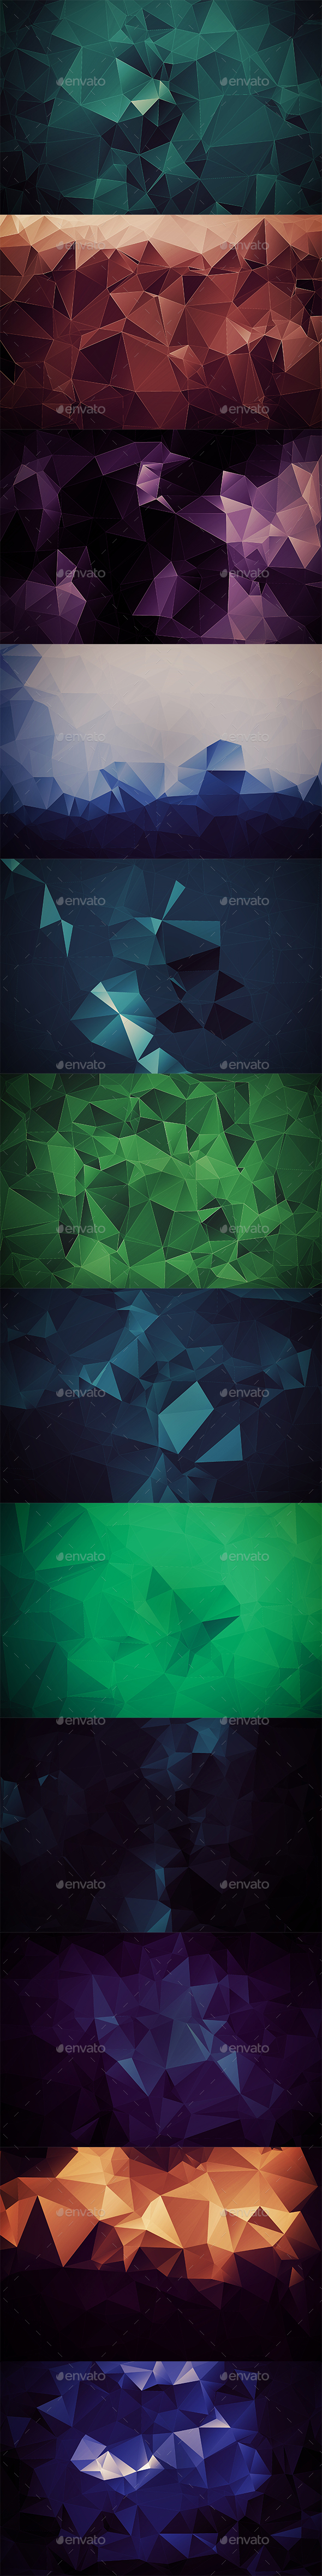 Abstract Polygonal Backgrounds Vol6 - Abstract Backgrounds